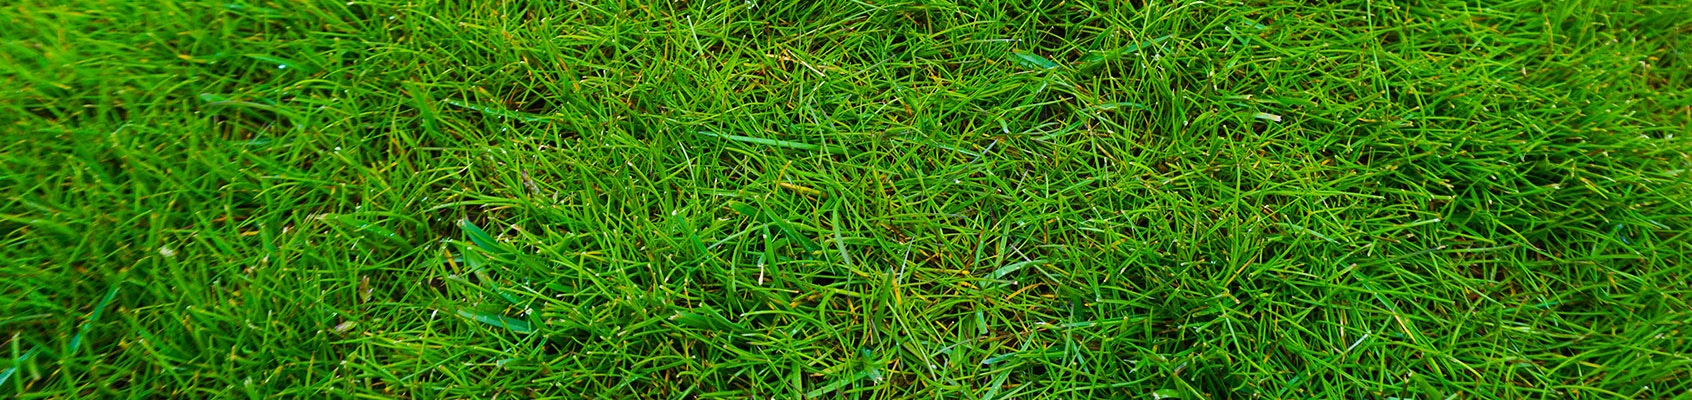 Our grass